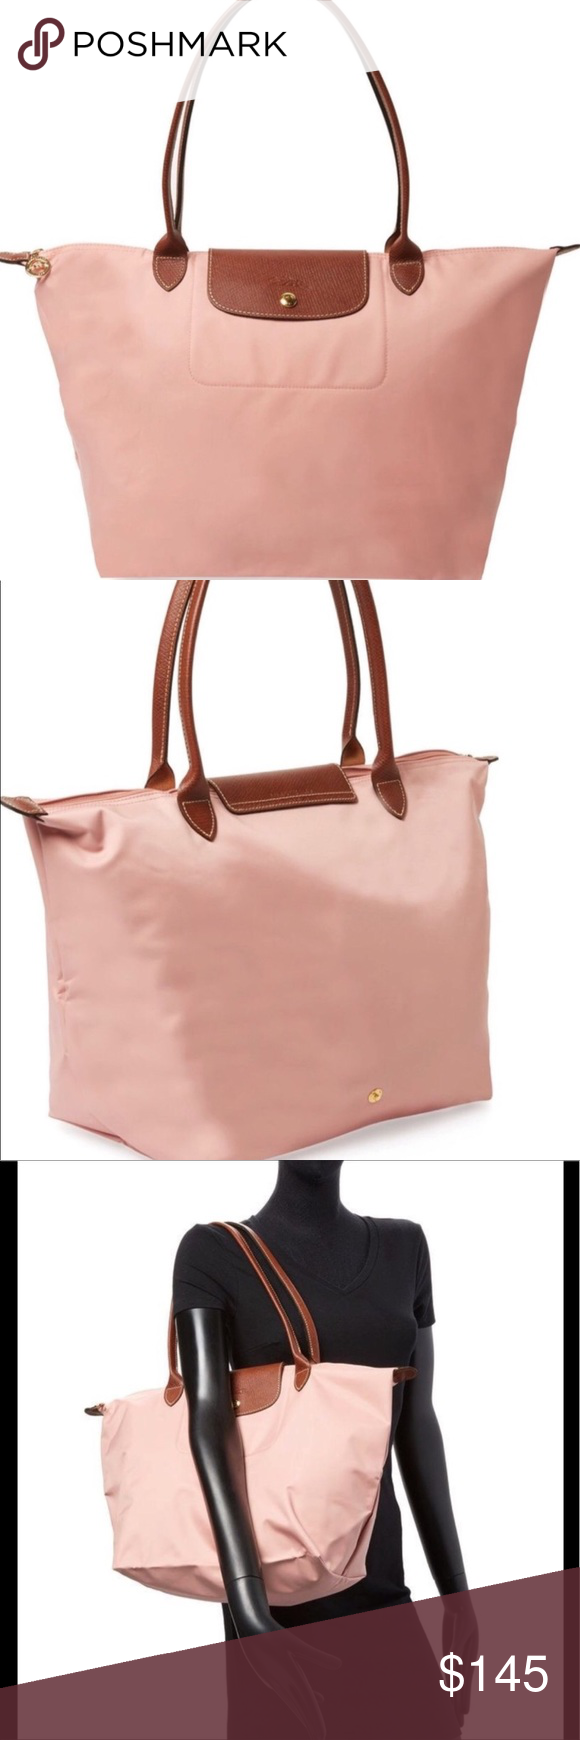 """Longchamp """"Pinky"""" Le Pliage bag L w long handles The folding bag from  Longchamp in size L with long handles in color PINKY. Longchamp Bags  Shoulder Bags 13976f9d00"""